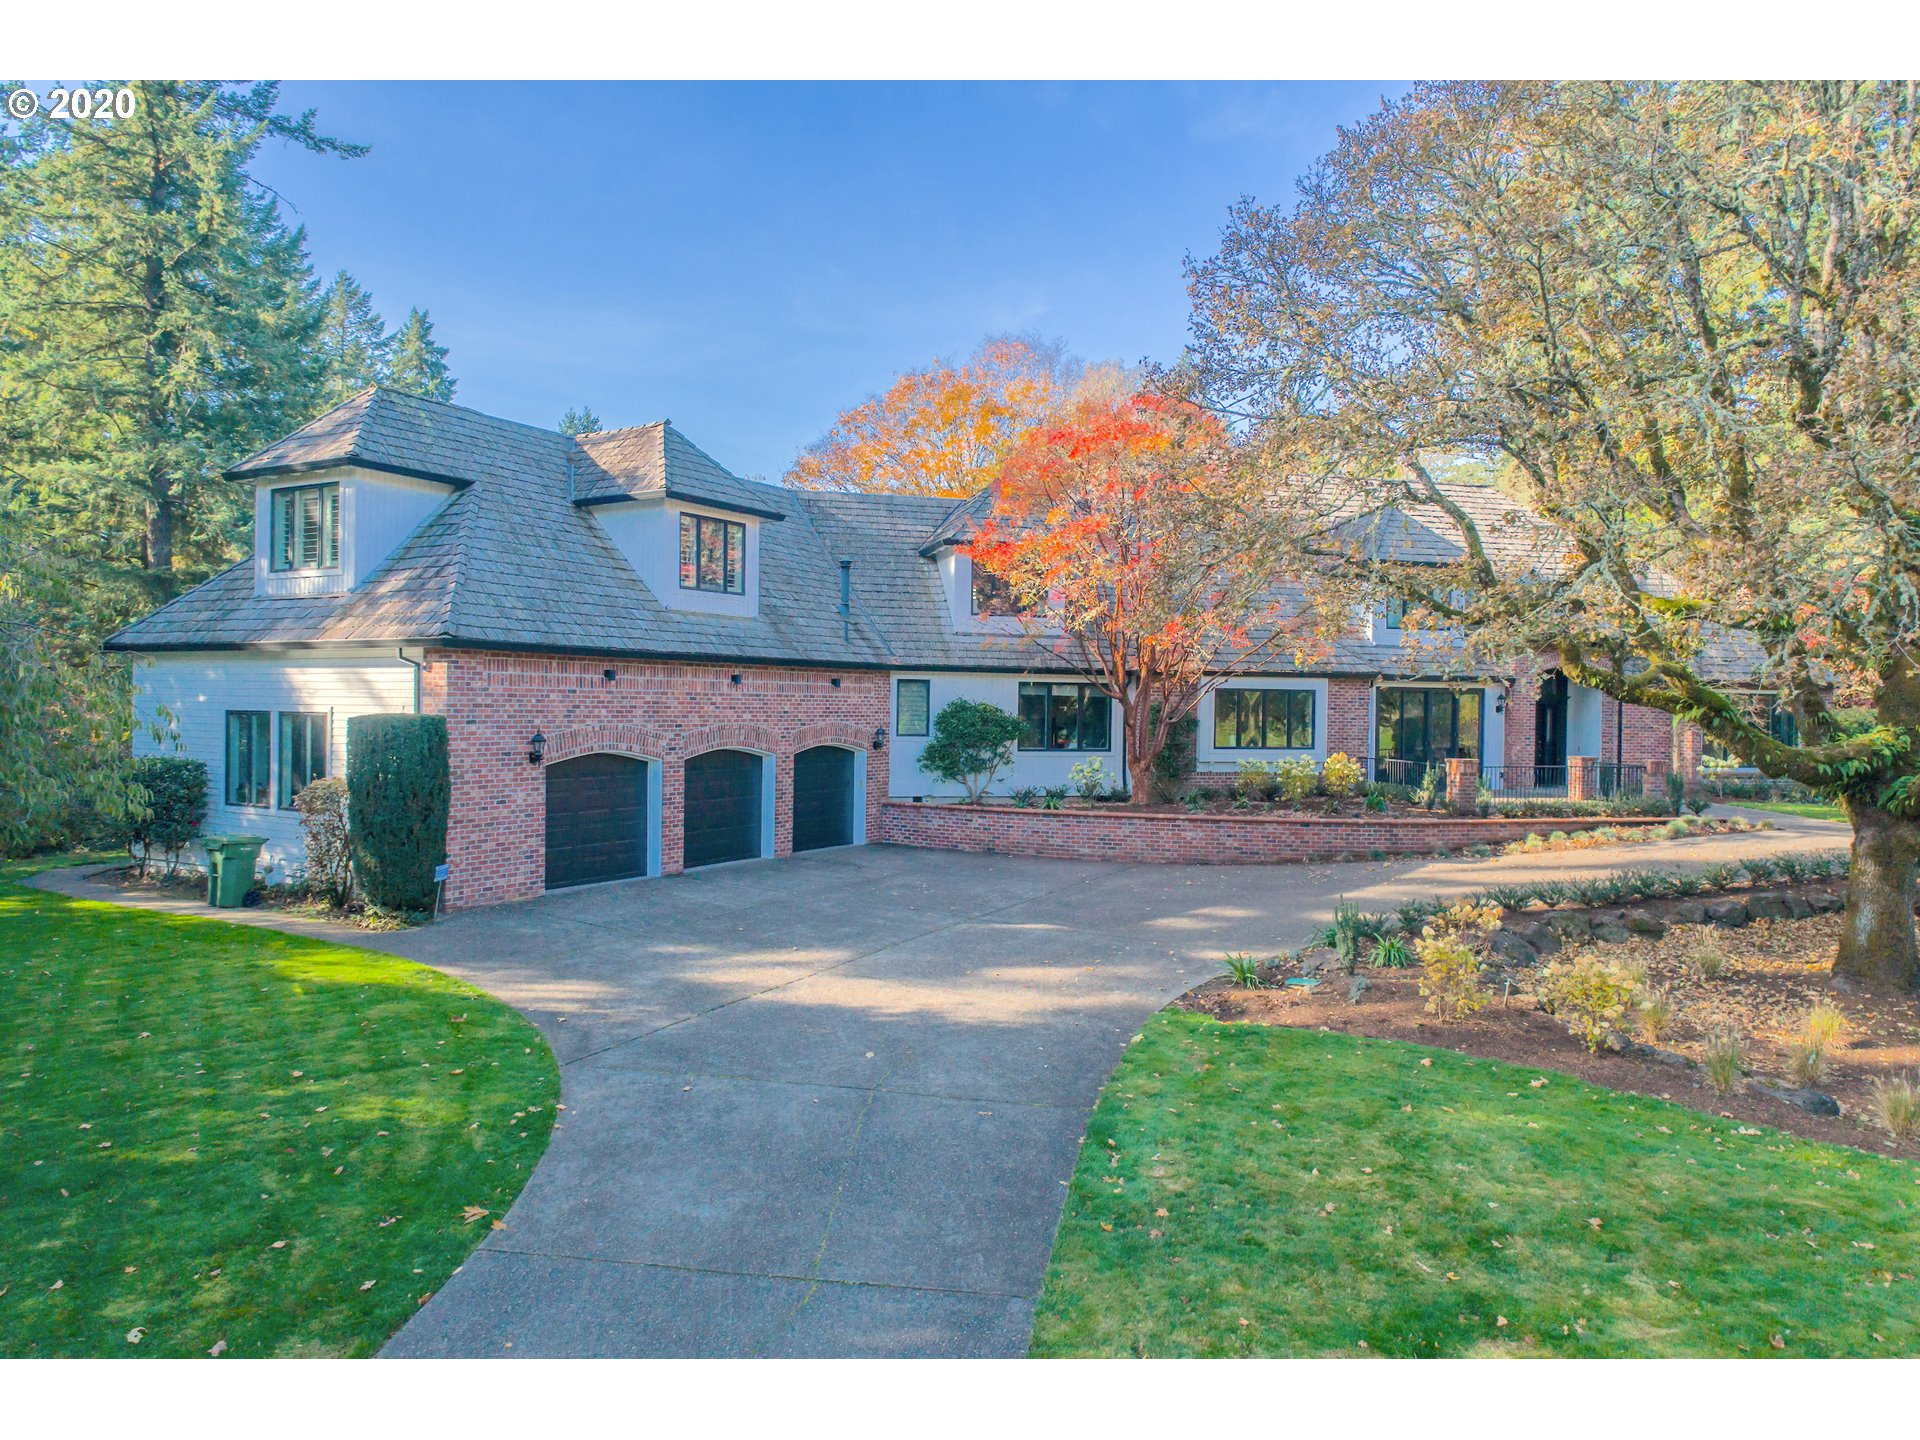 Beautiful custom-built estate home on 2.25 acre lot with expansive sweeping views of Oswego Lake Golf Course. This beautifully-maintained home is unmatched in its location, views, and privacy; in one of LO's most walkable areas. Large, light-filled rooms, and estate grounds are perfect for entertaining friends and family. Luxurious features & finishes thru-out including built-ins and hardwood floors. Steps from Oswego Lake Country Club and Forest Hills boat/swim easement!